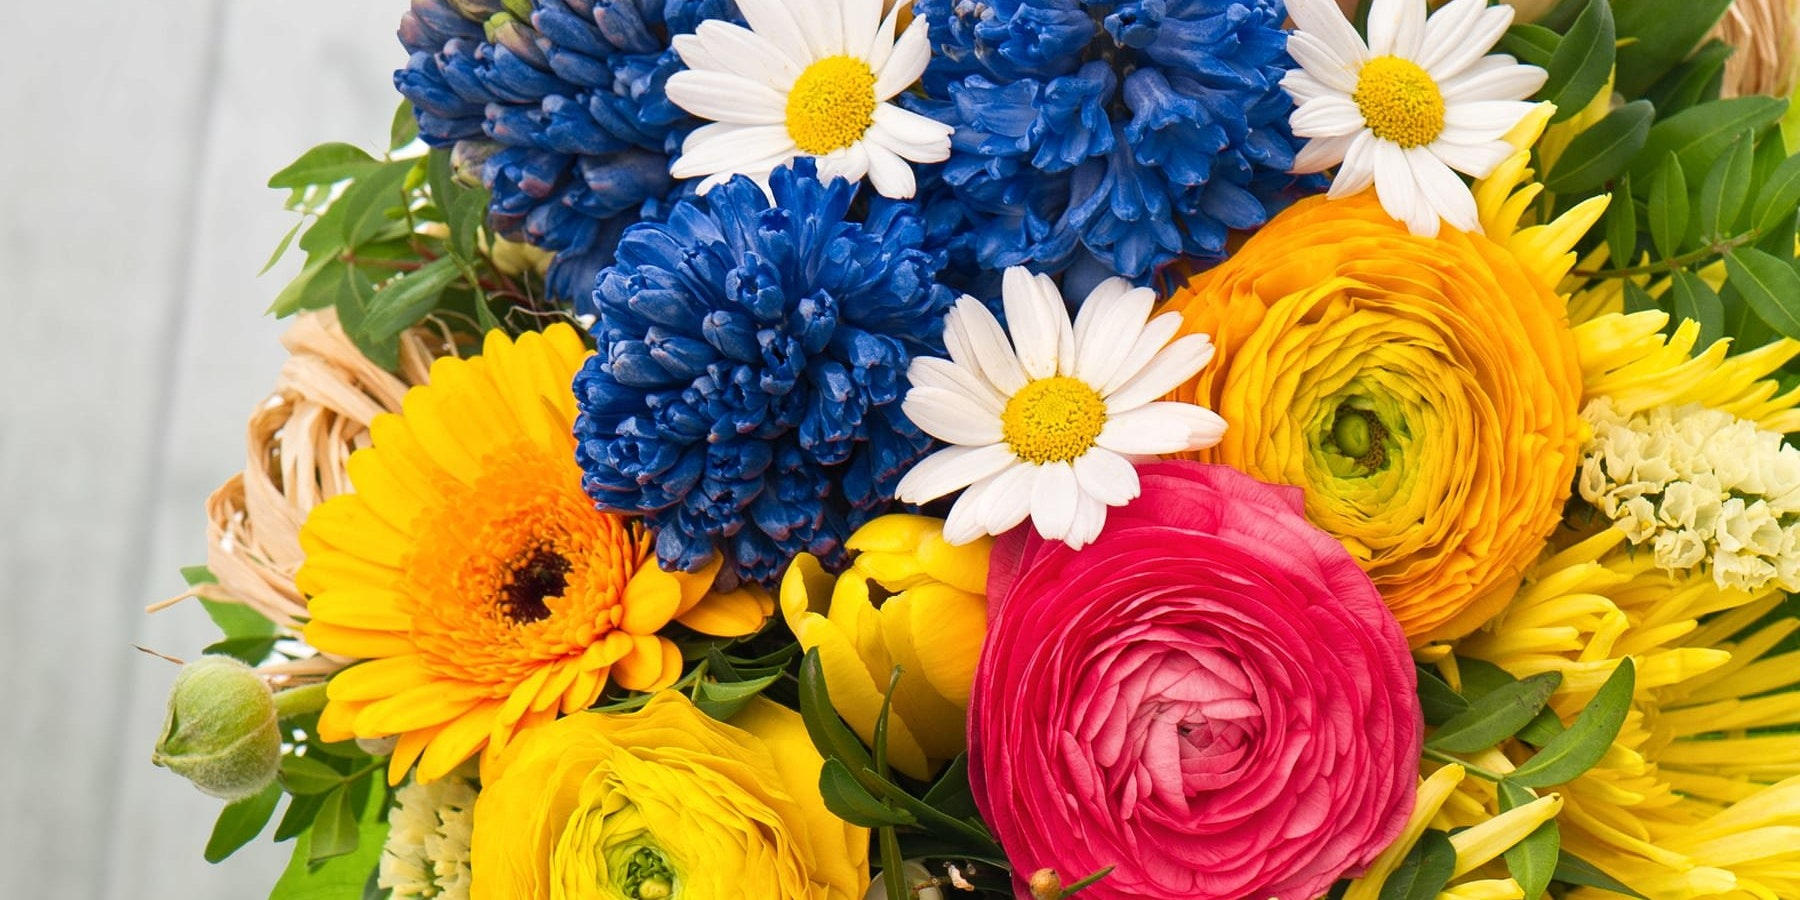 Flowers Just 4 U Florals and Gifts